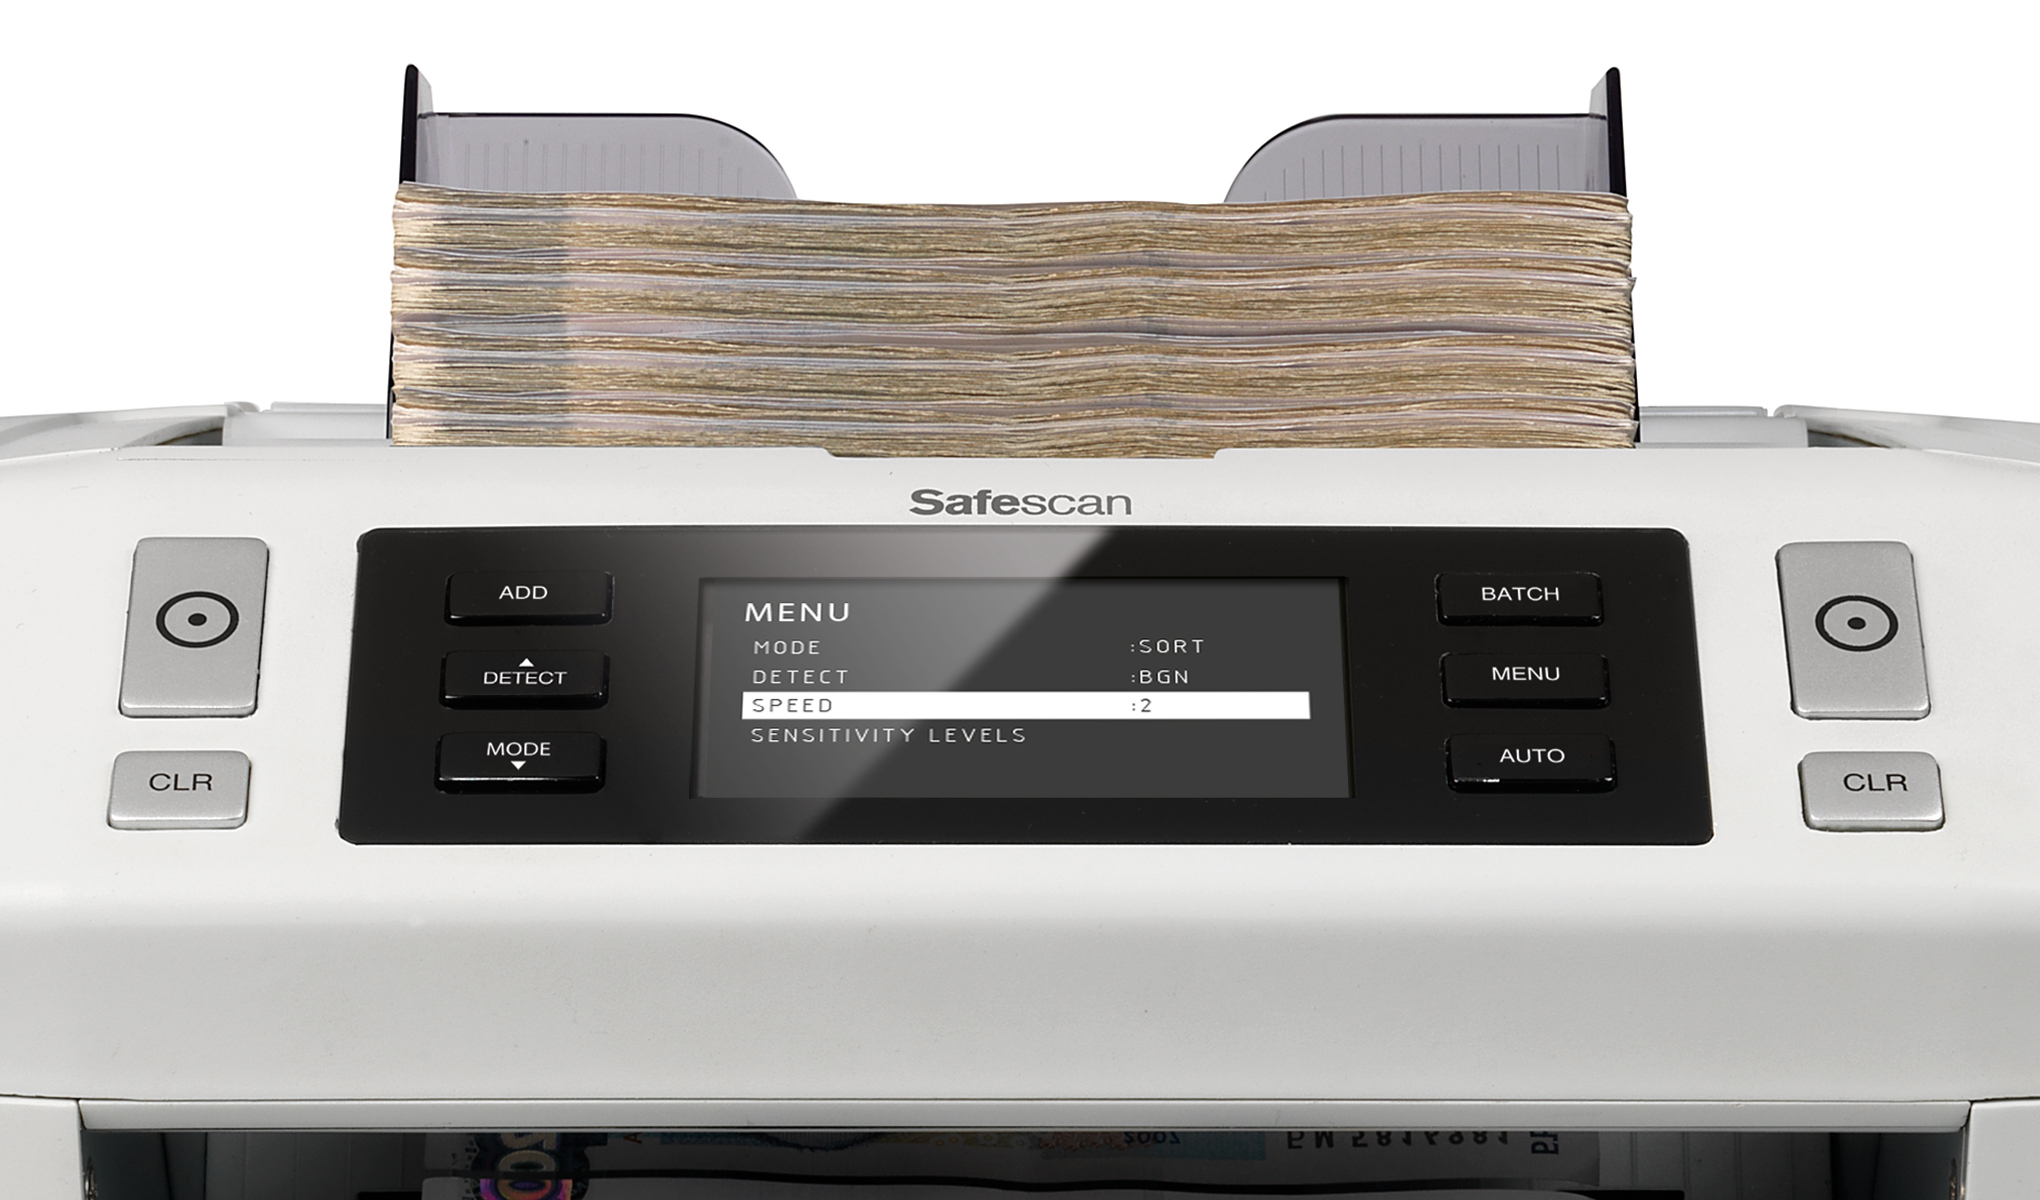 safescan-2650-money-counter